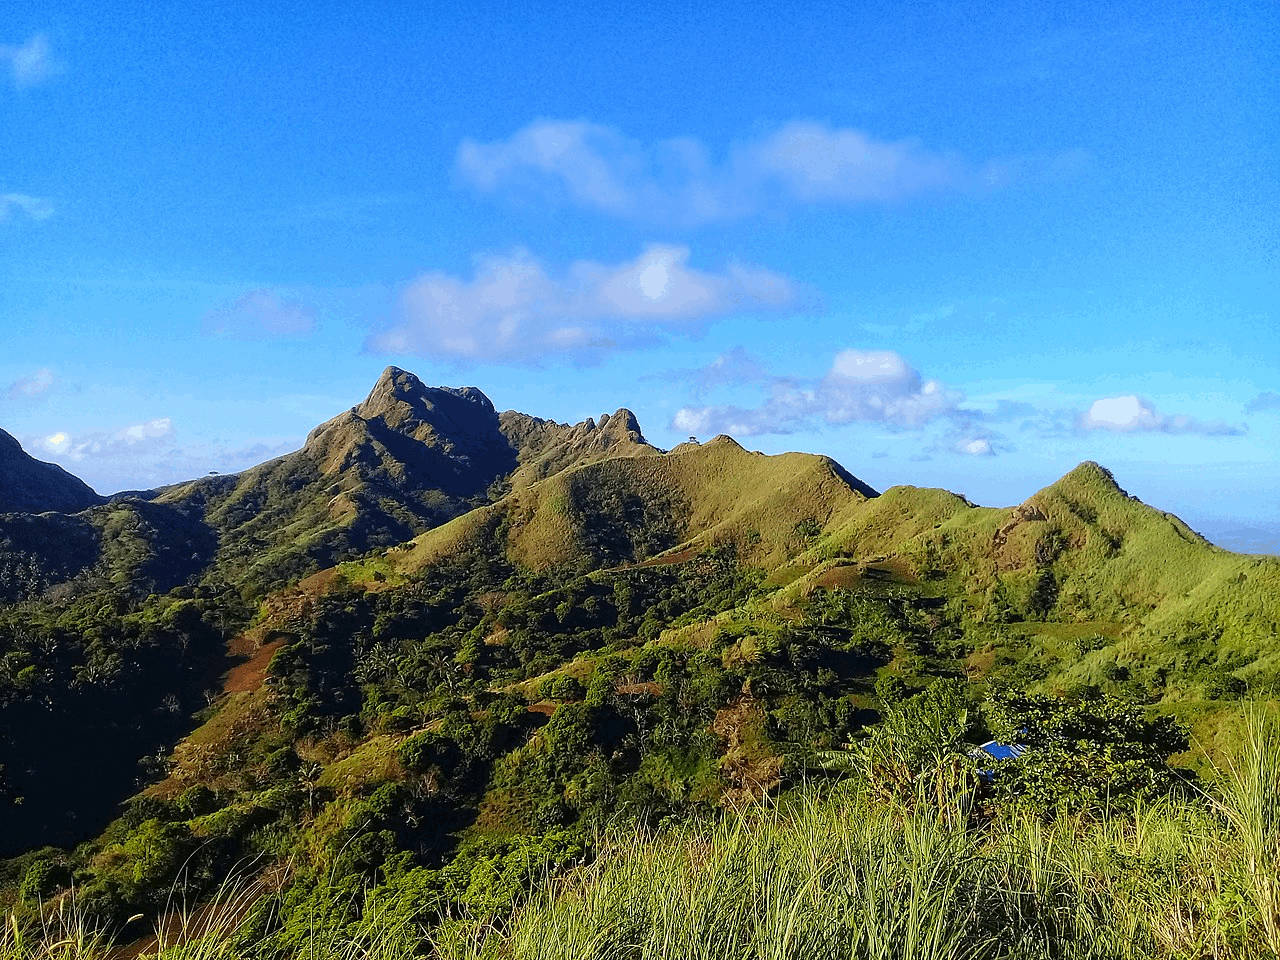 Mountains Philippines - Mount Batulao